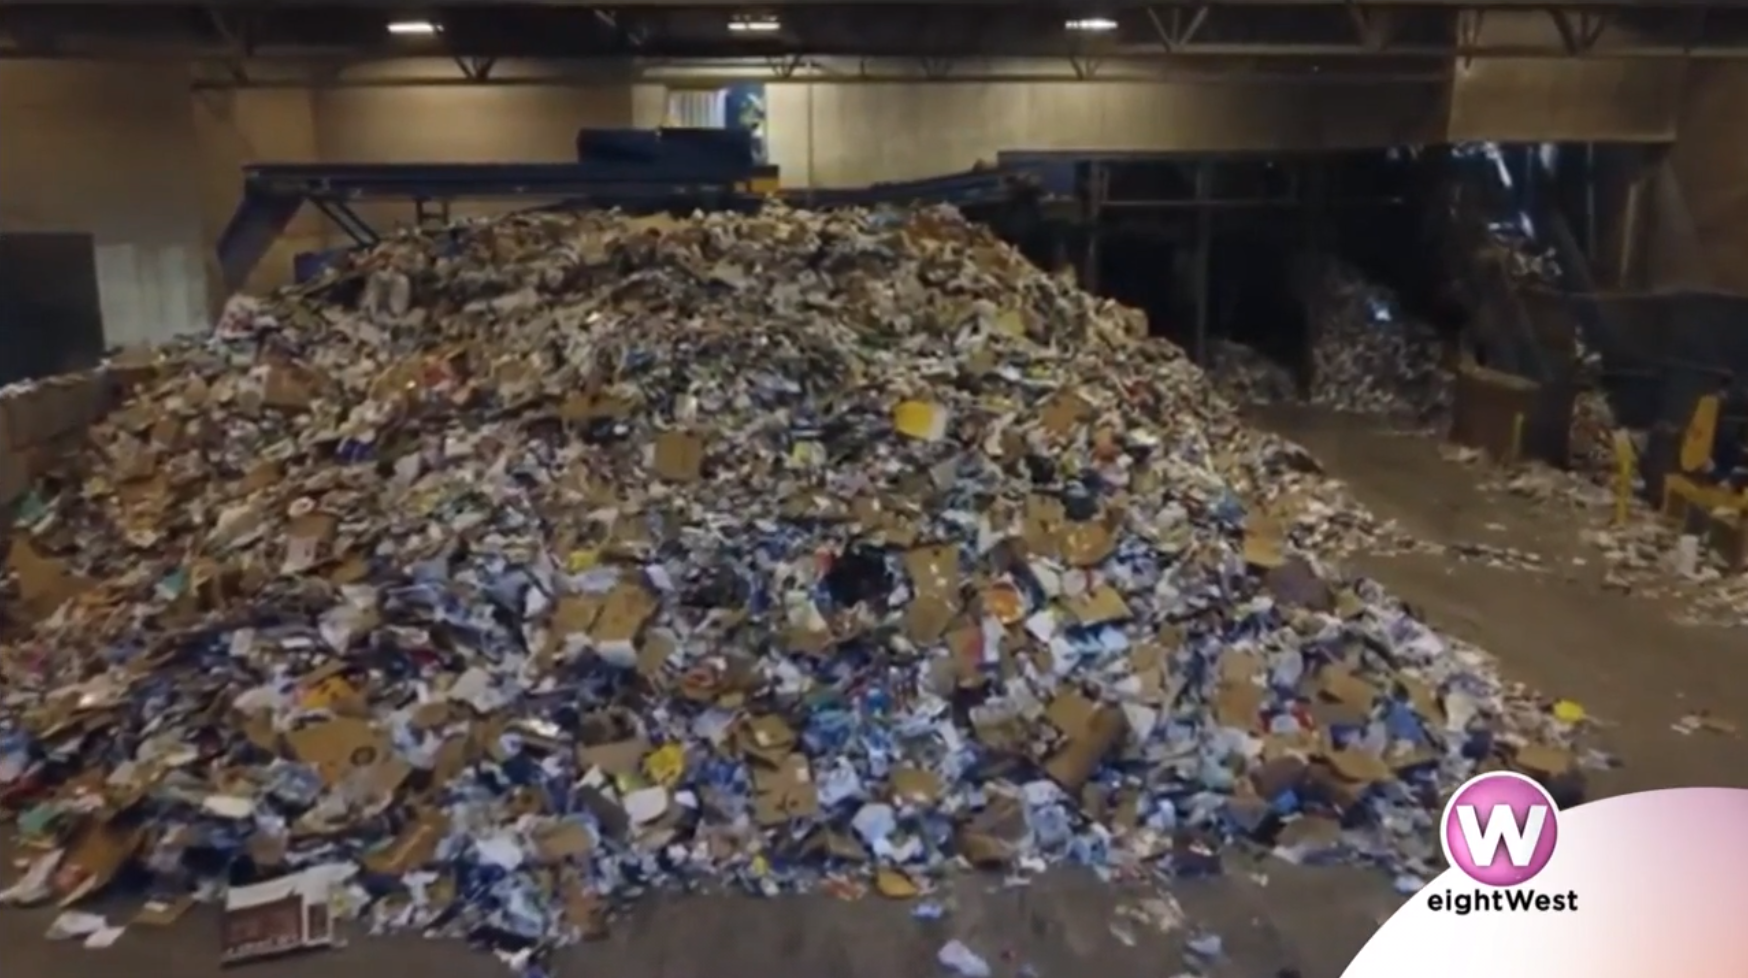 A pile of goods to be recycled at a recycling center